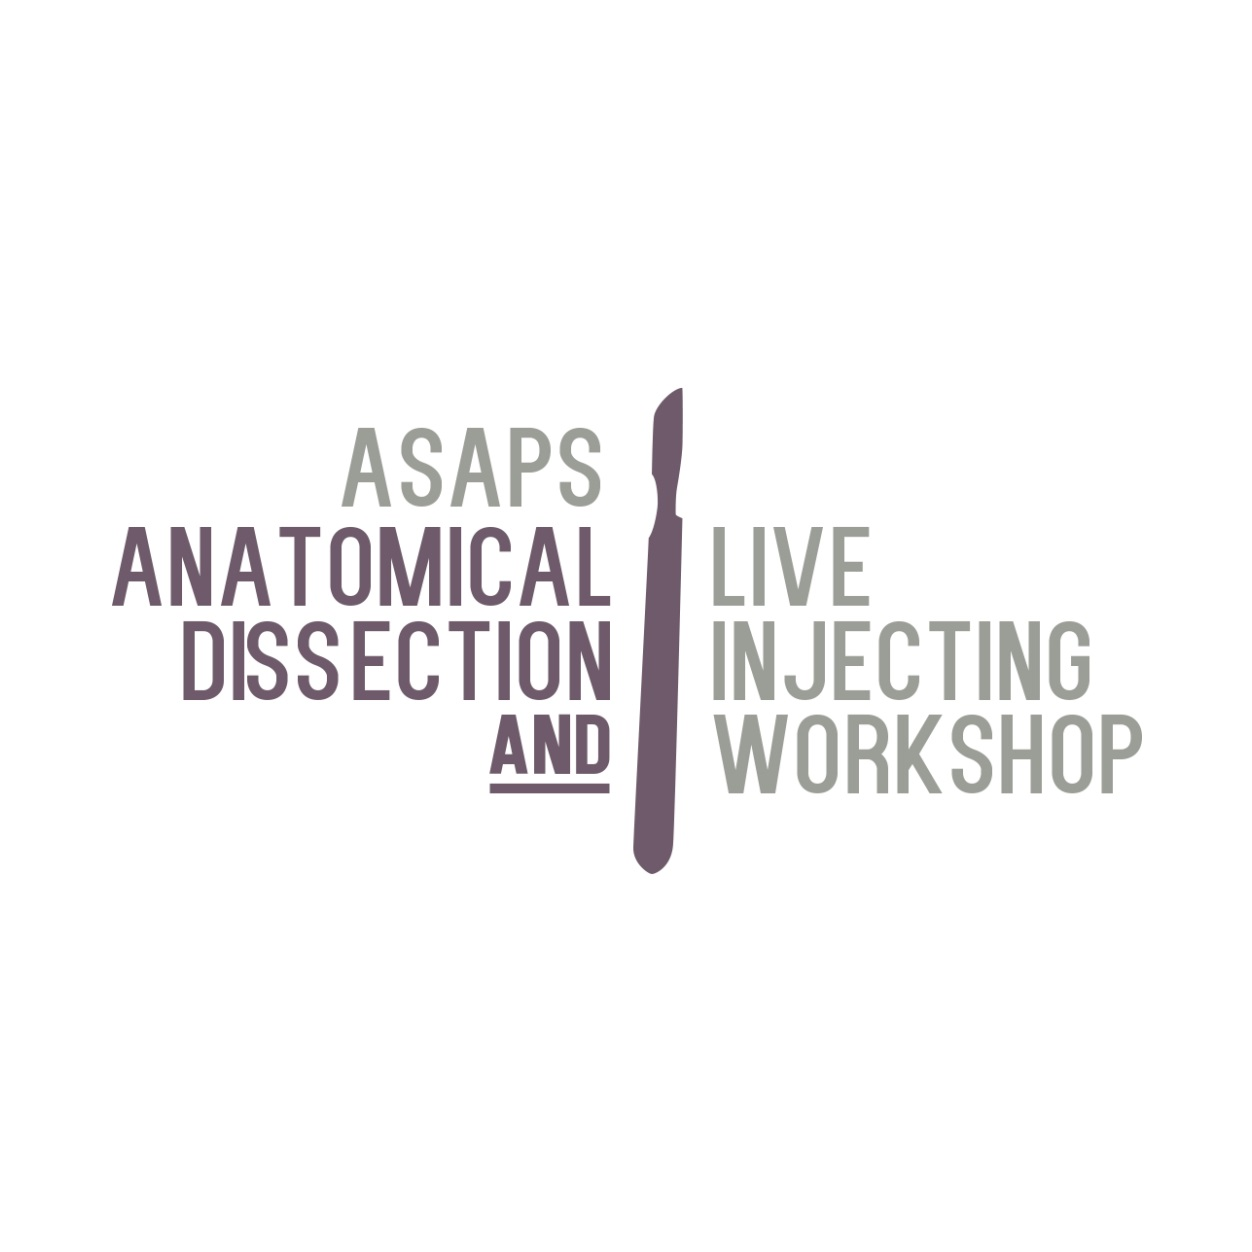 Anatomical Dissection and Live Injecting Workshop – 2018